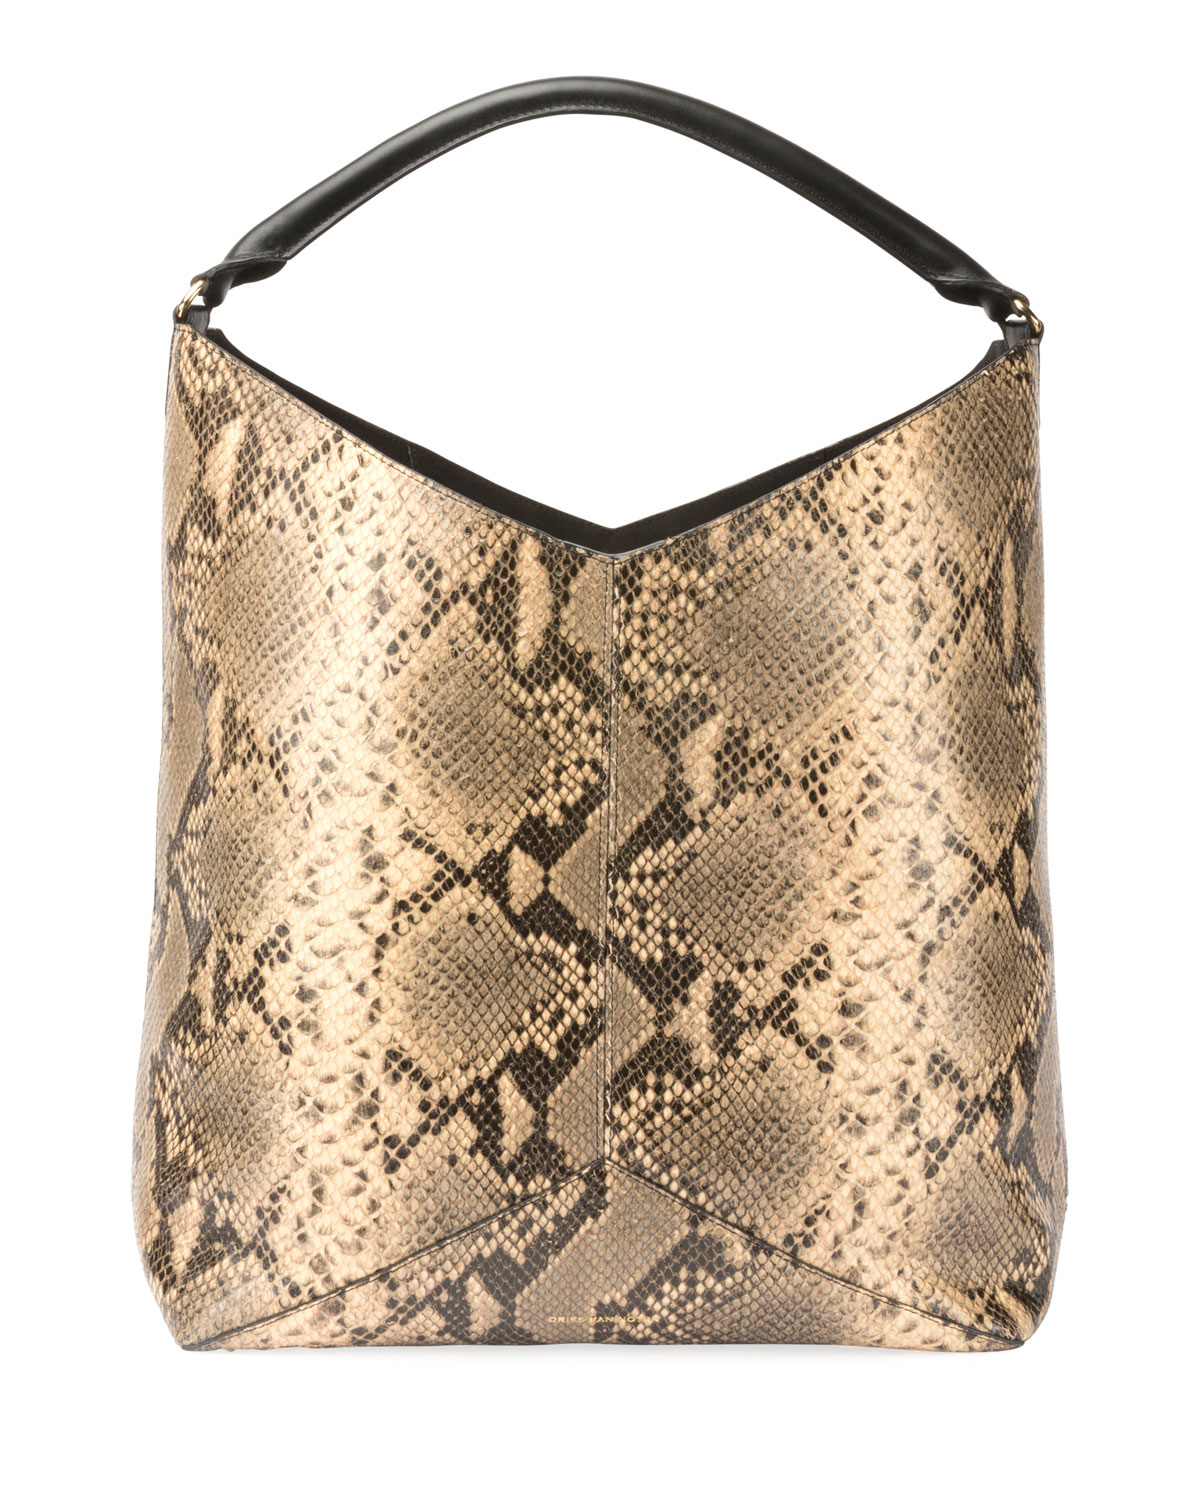 Dries Van Noten Snake-Embossed Leather Hobo Tote Bag  87a038d724e22